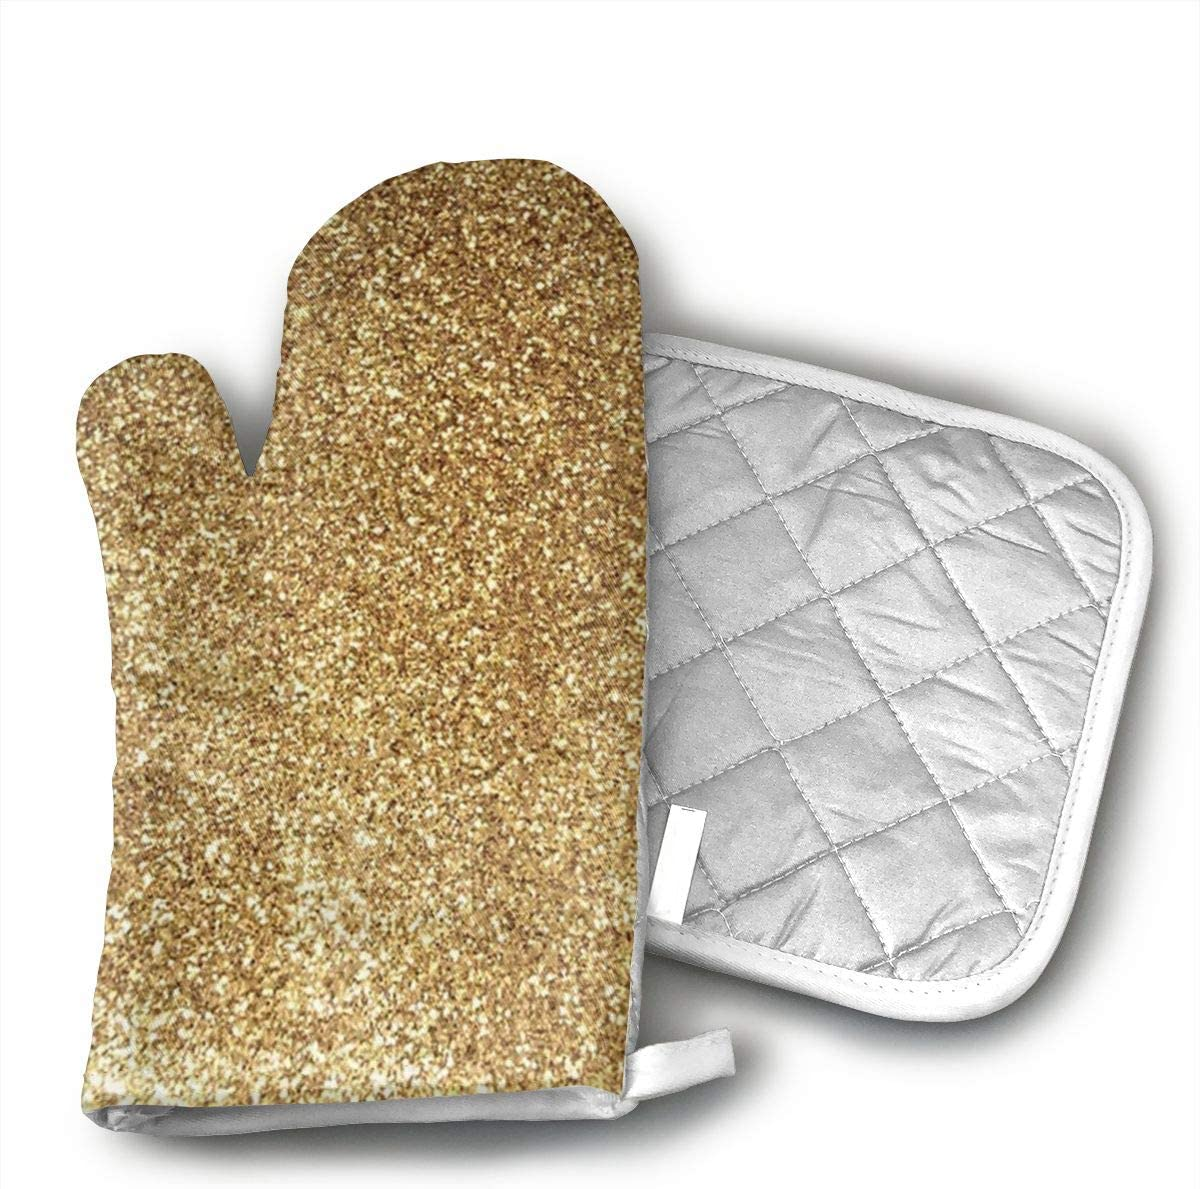 Wiqo9 Placer Gold Grinding Oven Mitts and Pot Holders Kitchen Mitten Cooking Gloves,Cooking, Baking, BBQ.